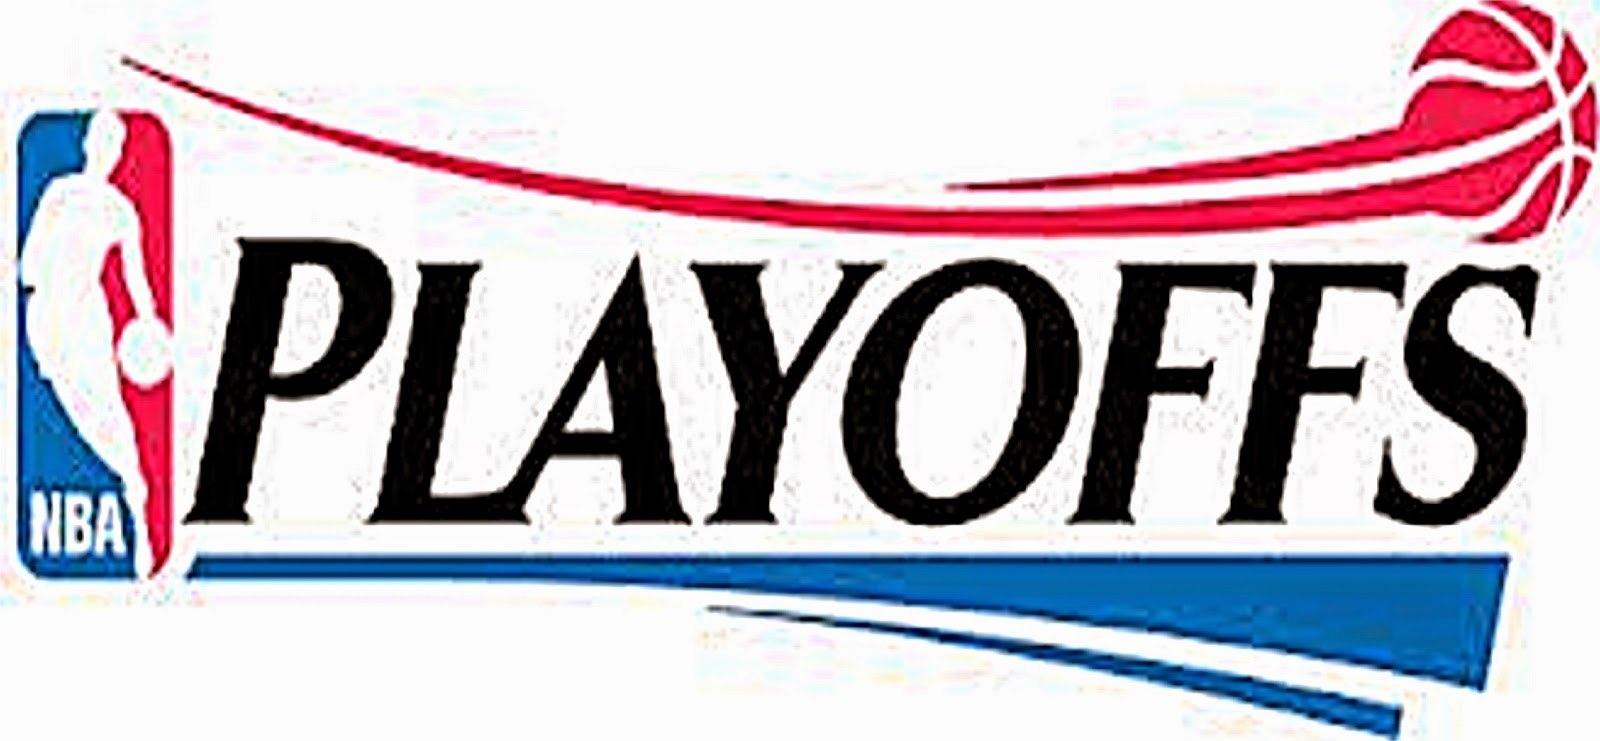 NBA Playoff Schedule 2015-2016